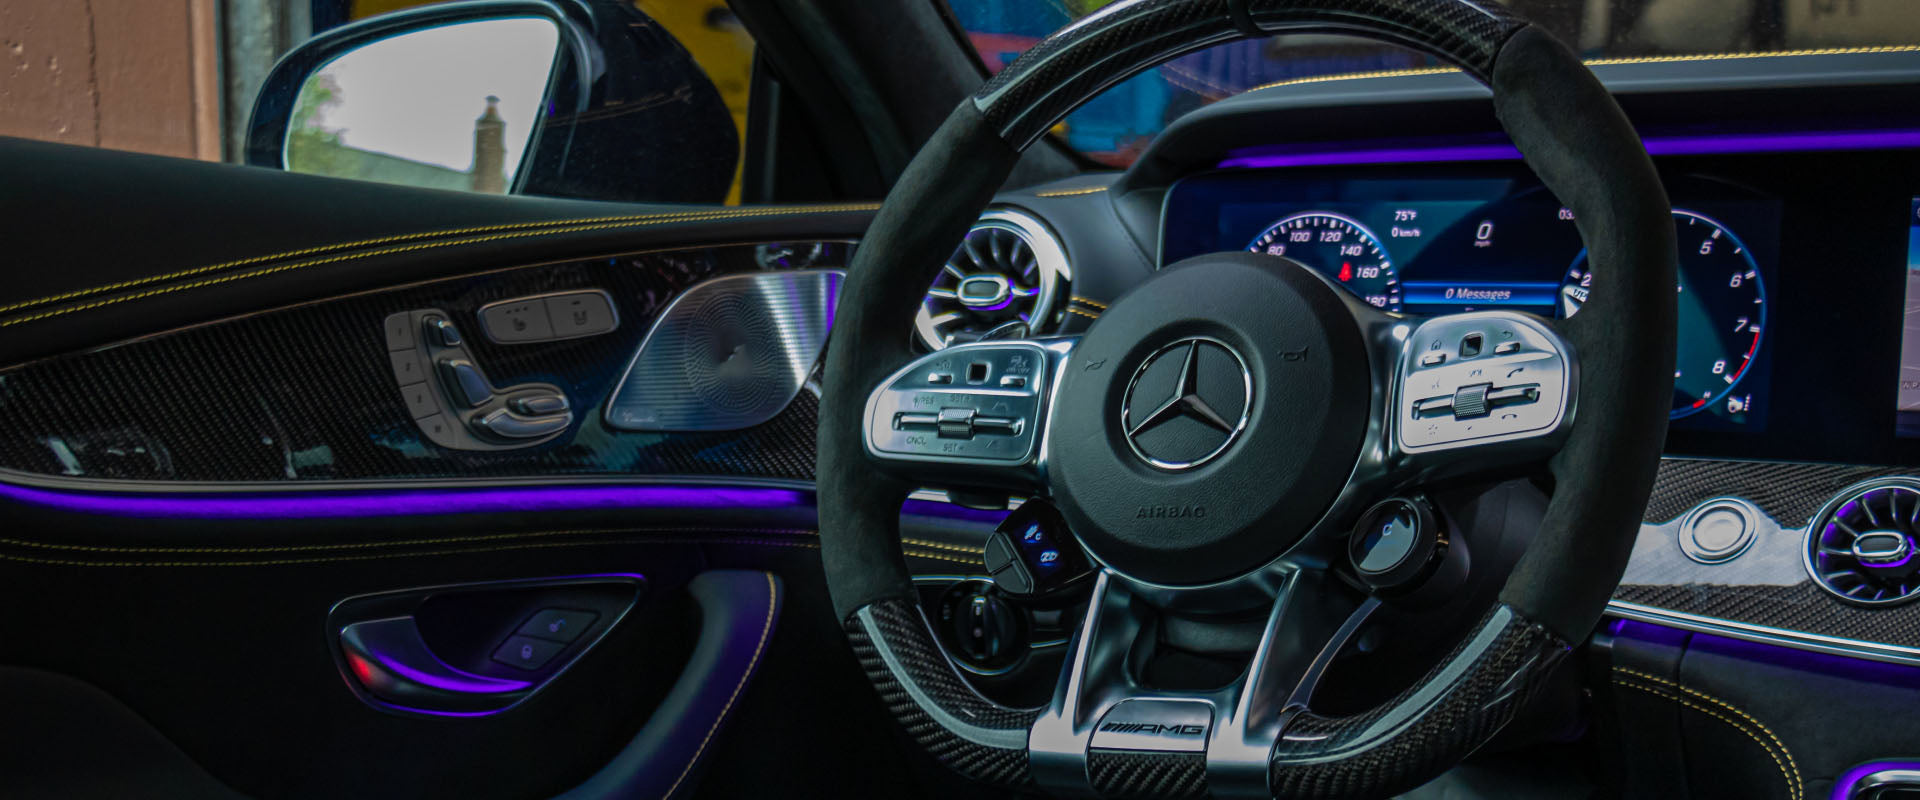 Aftermarket Ambient Lighting for Luxury Cars in Chicago